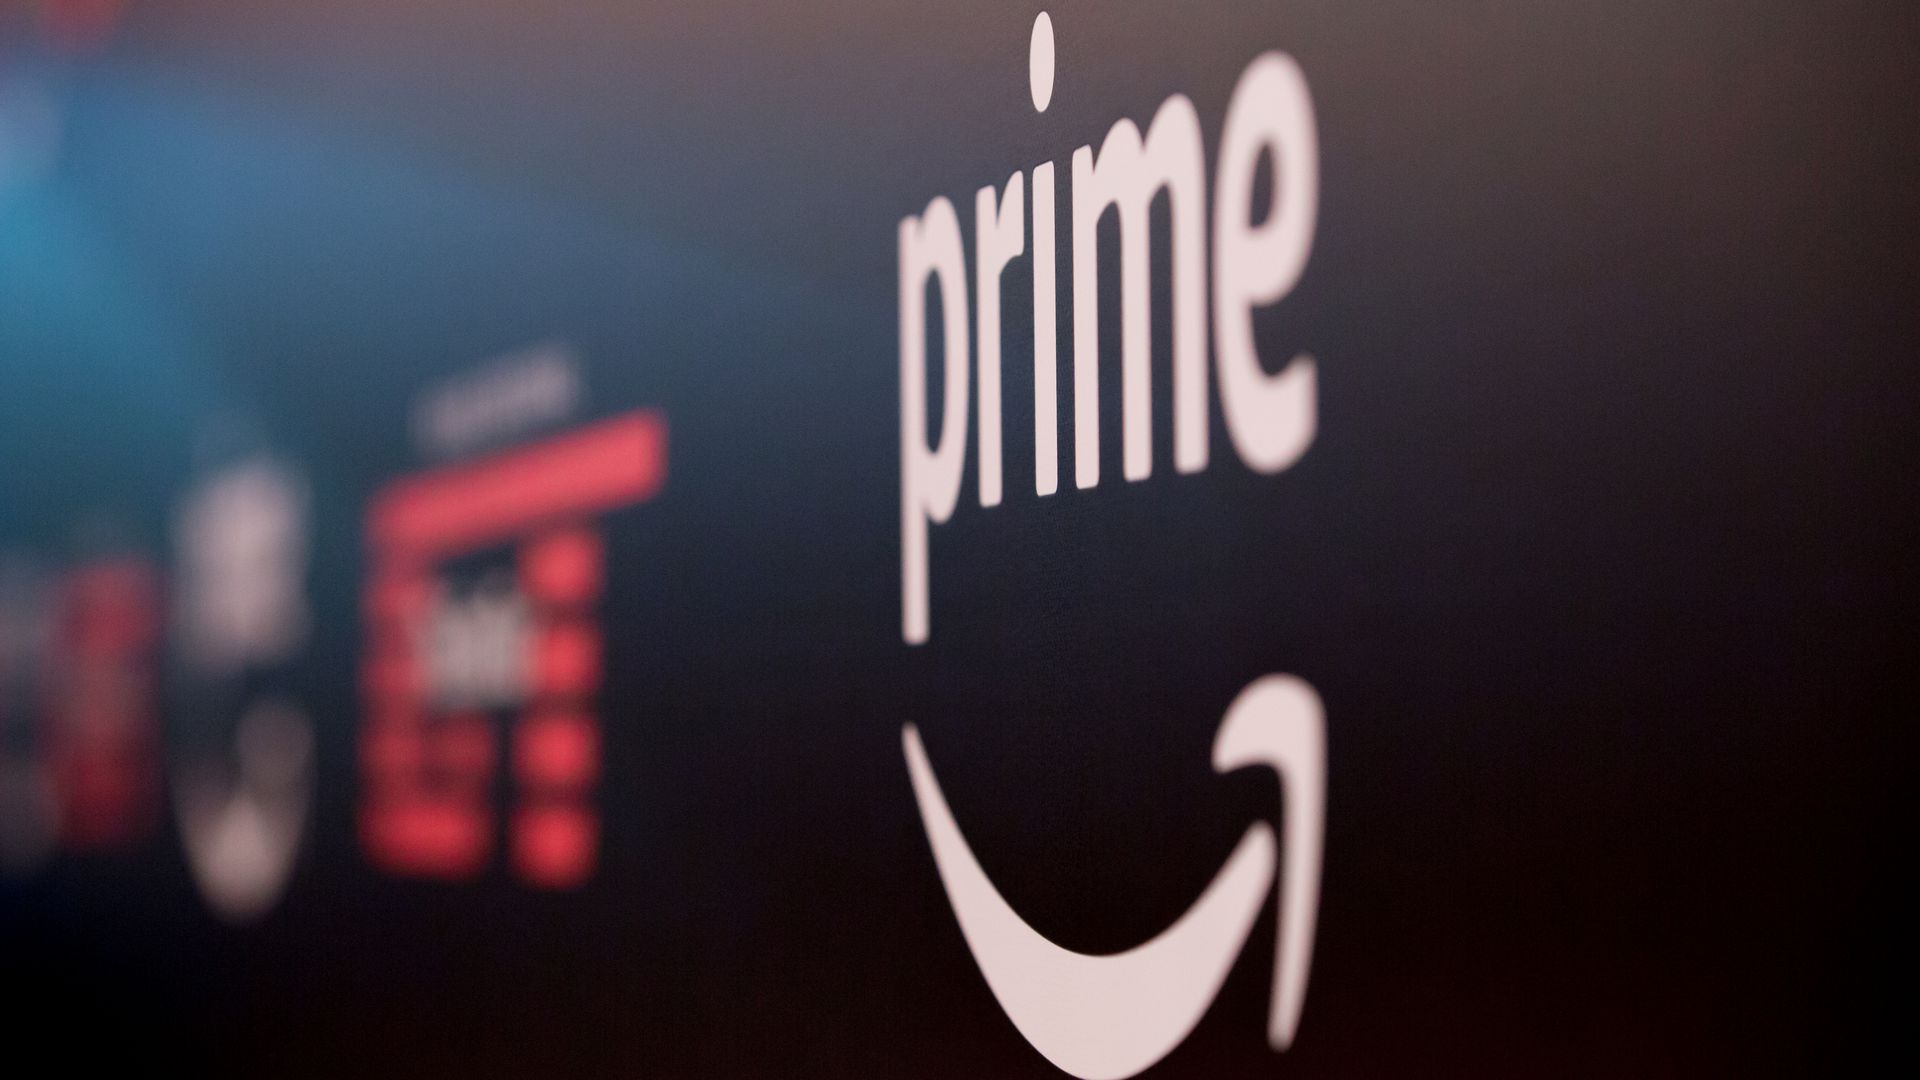 Amazon Prime logo on a building